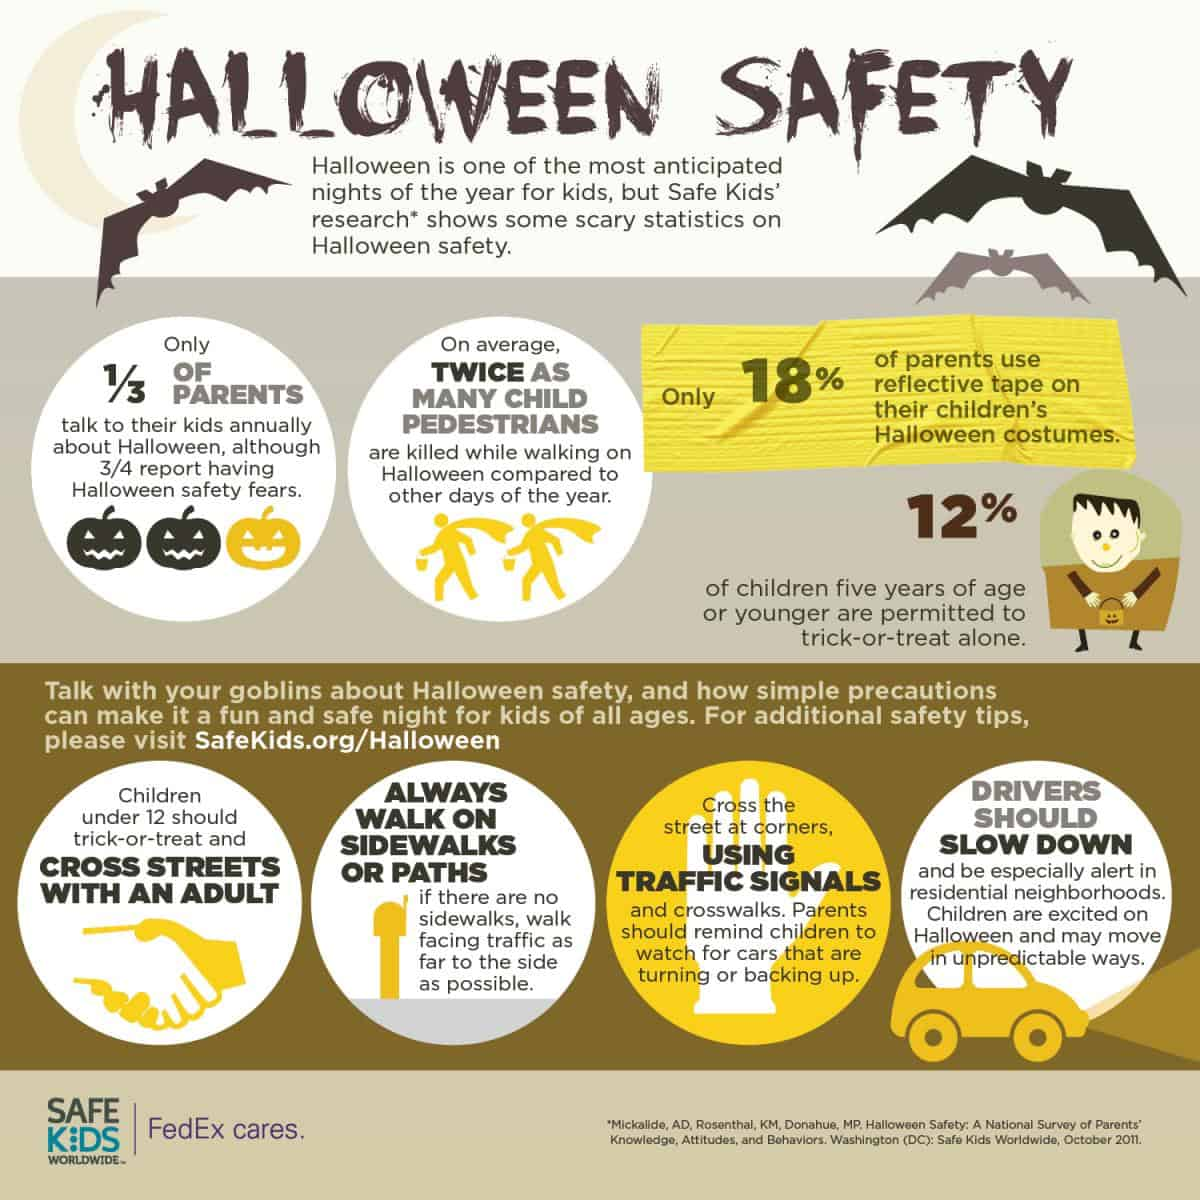 Halloween Safety Tips for Drivers